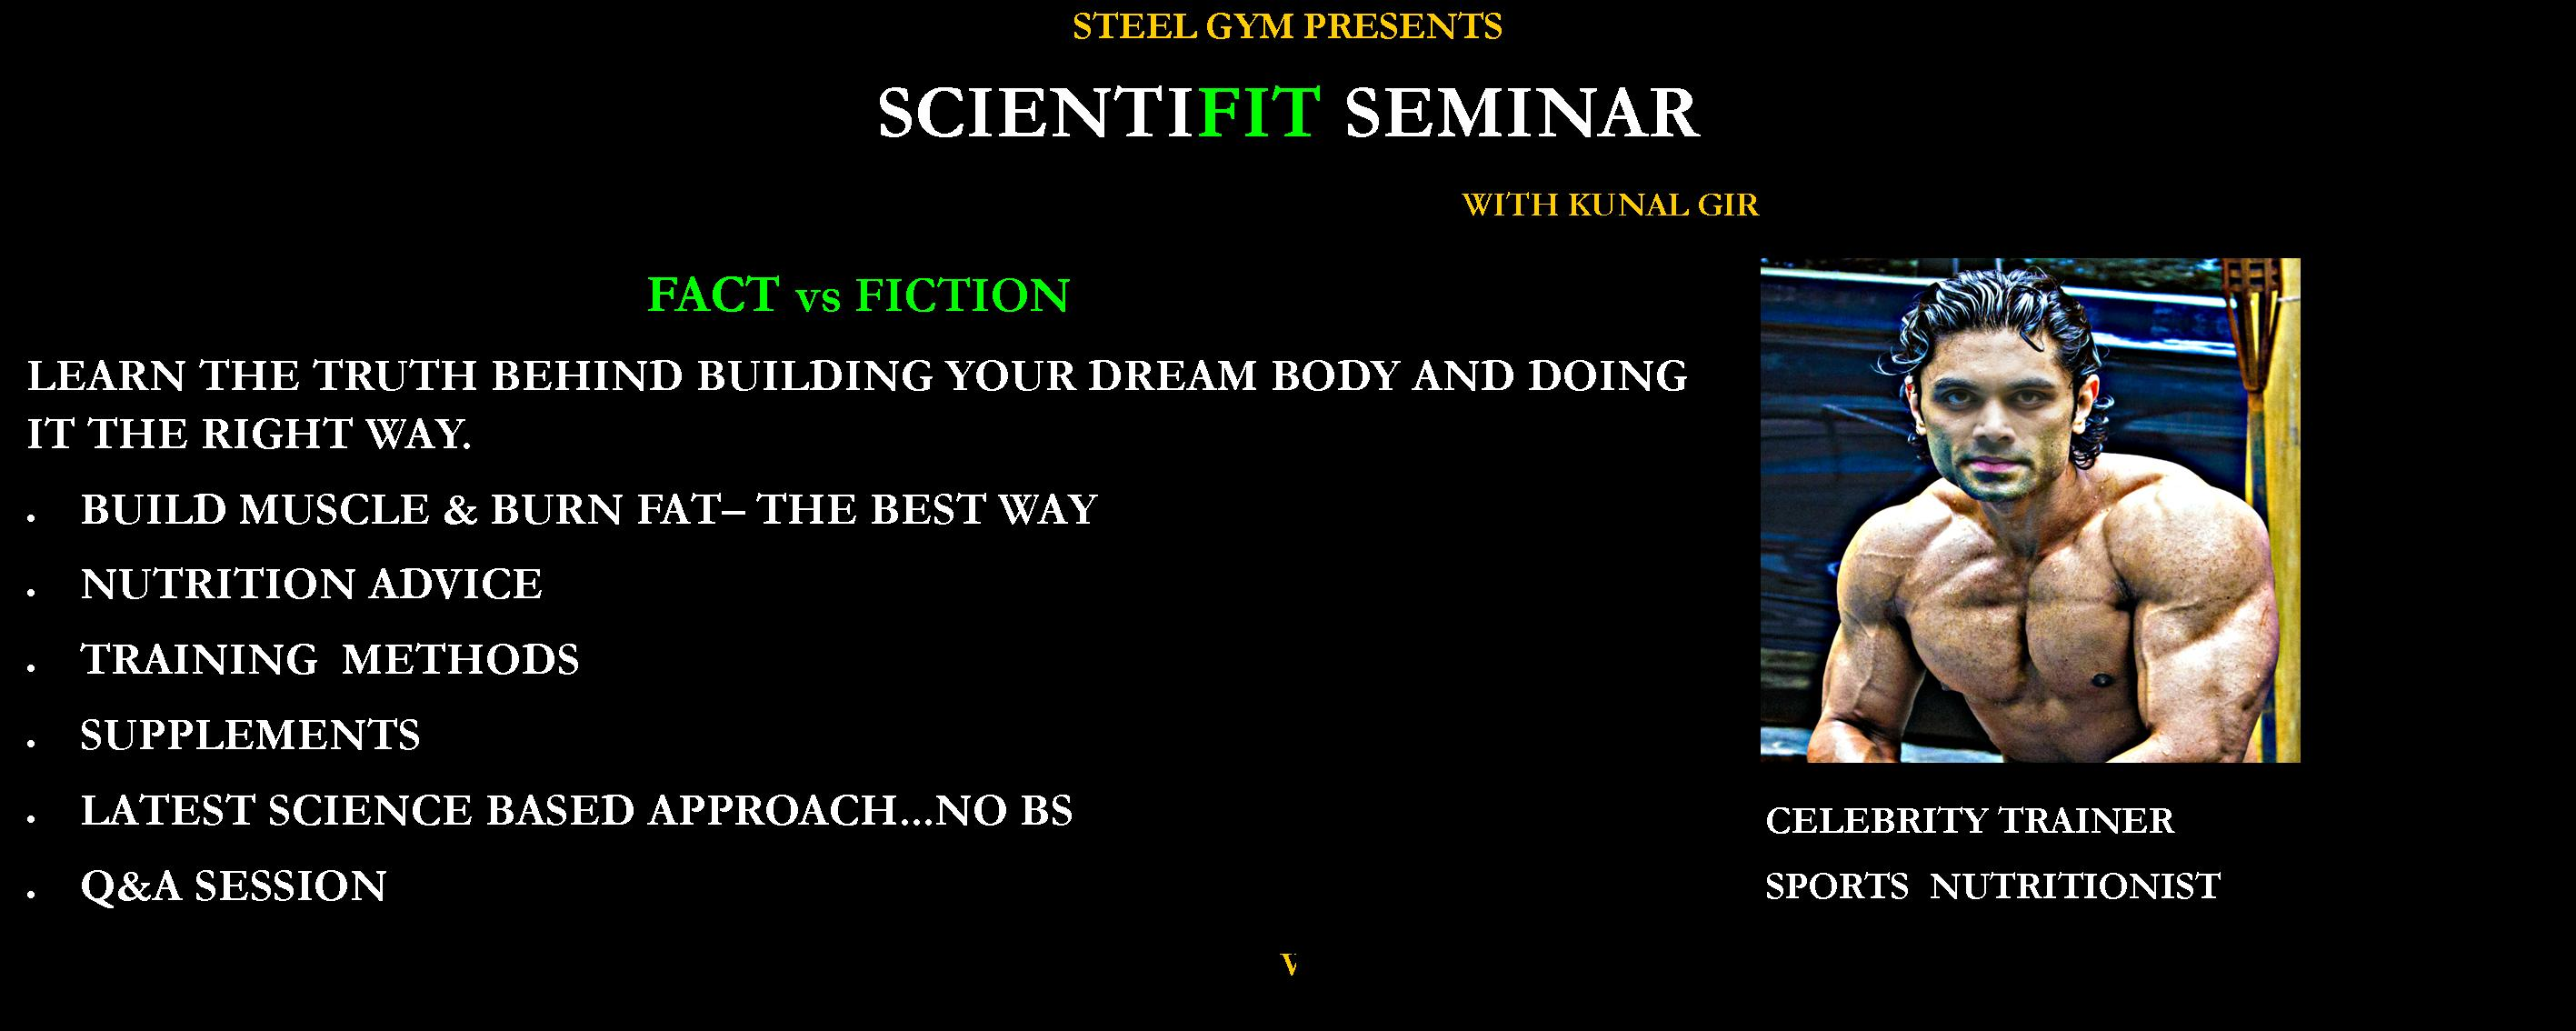 FITNESS SEMINAR with KUNAL GIR